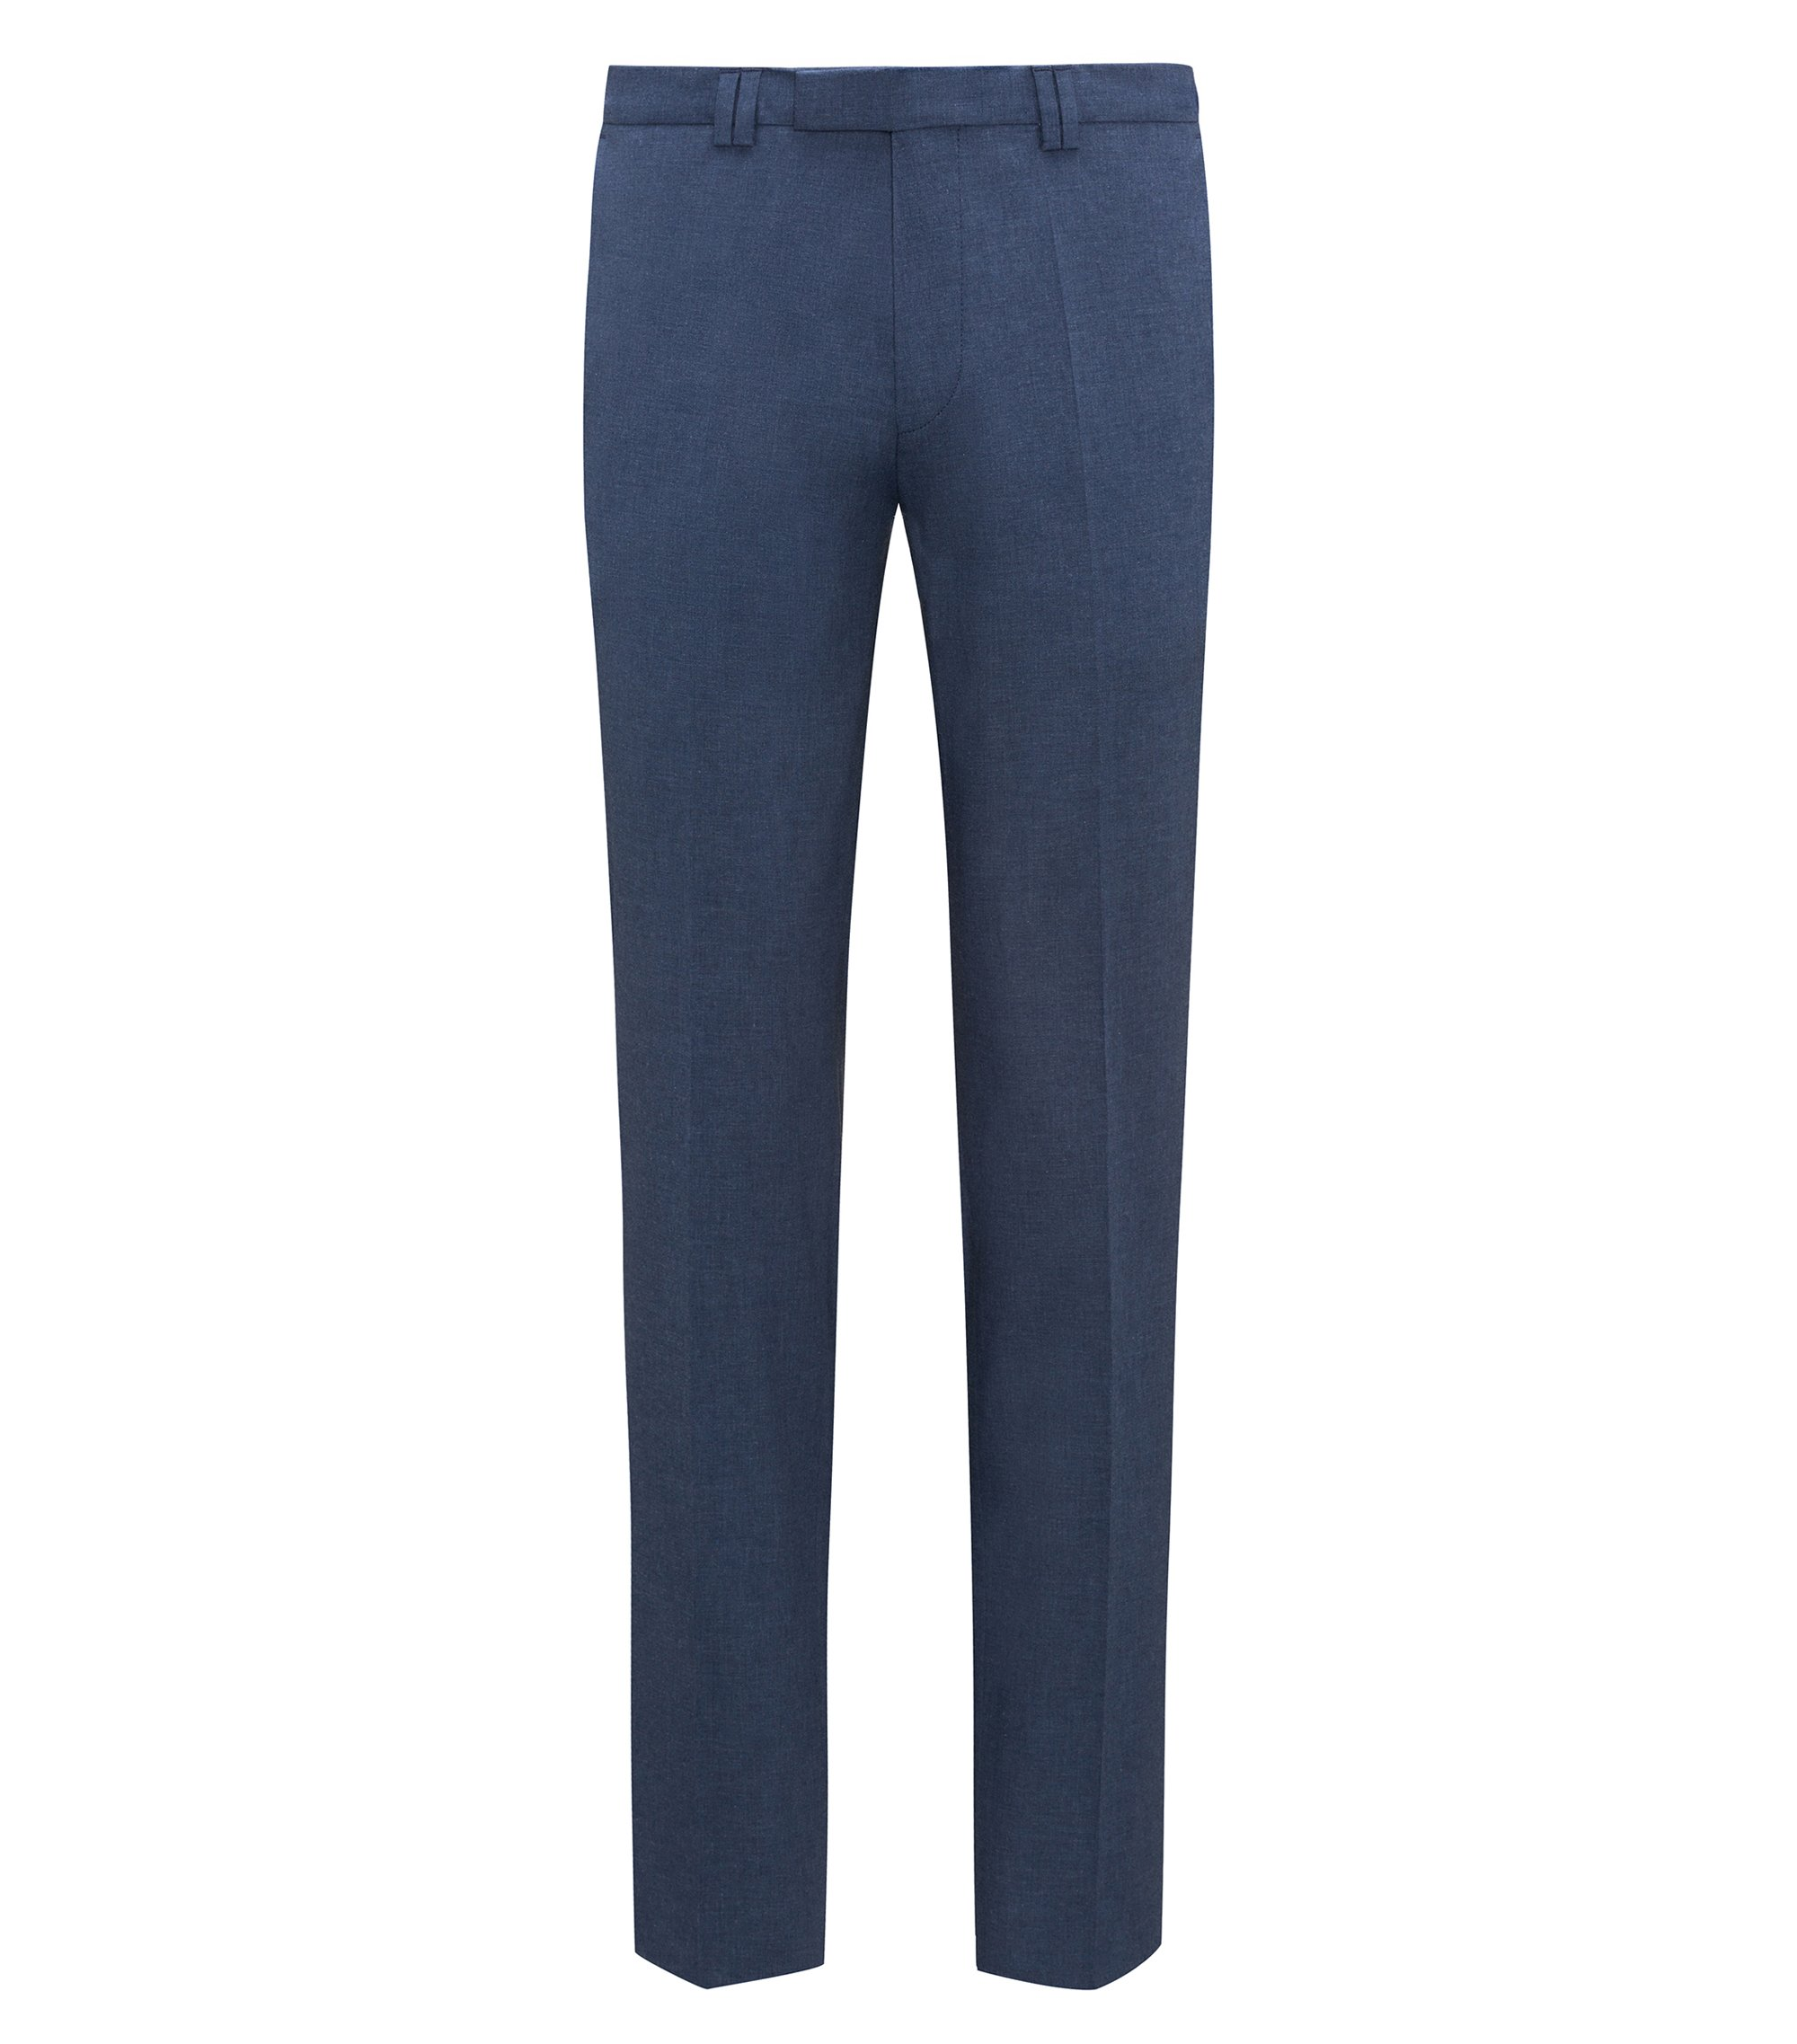 Pantalon Extra Slim Fit en coton stretch chiné, Bleu foncé